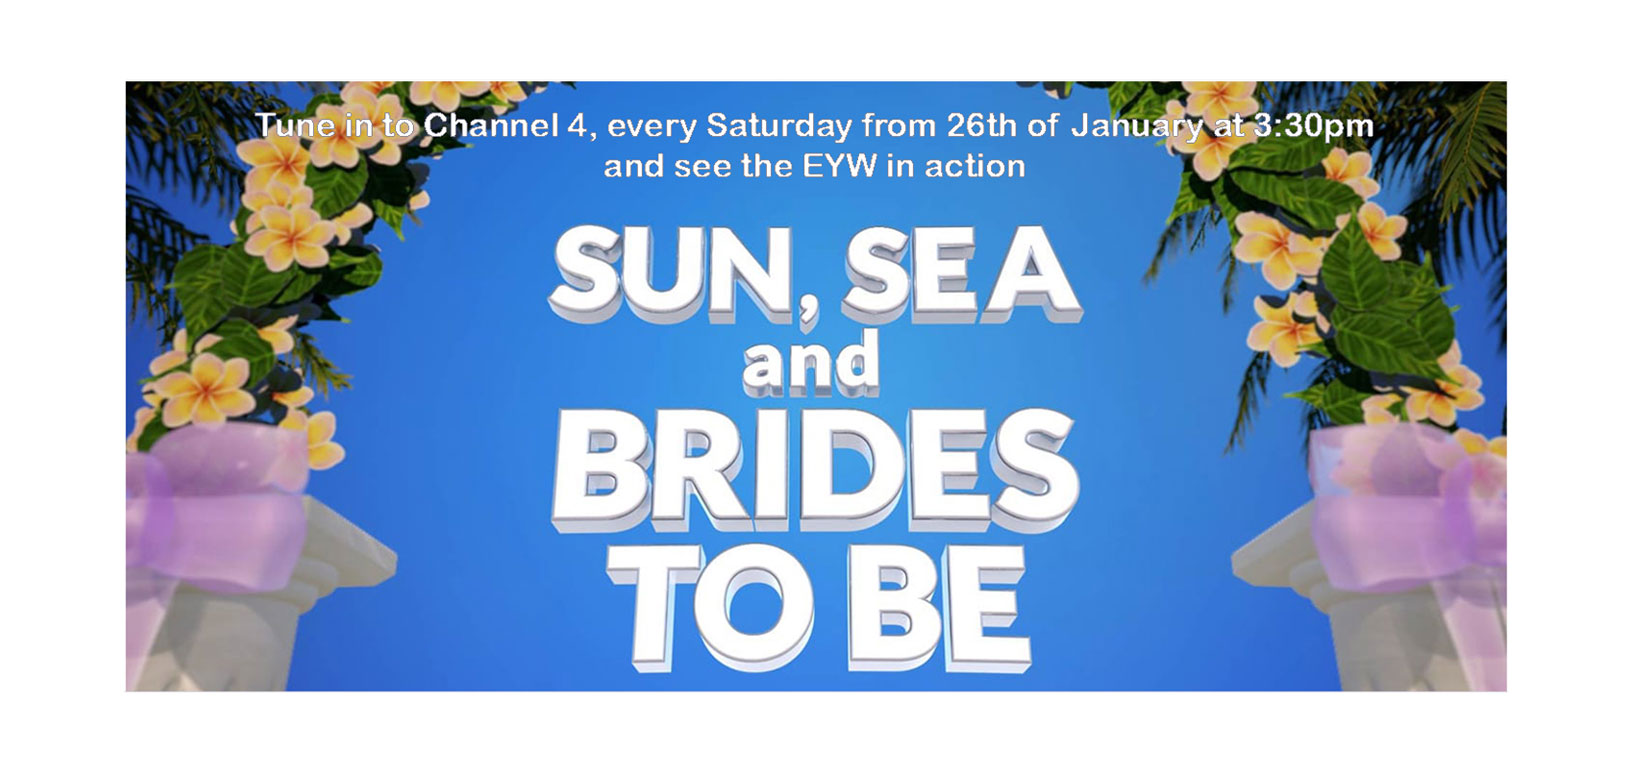 sun-see-brides-to-be-channel4-every-saturday-from-26-january